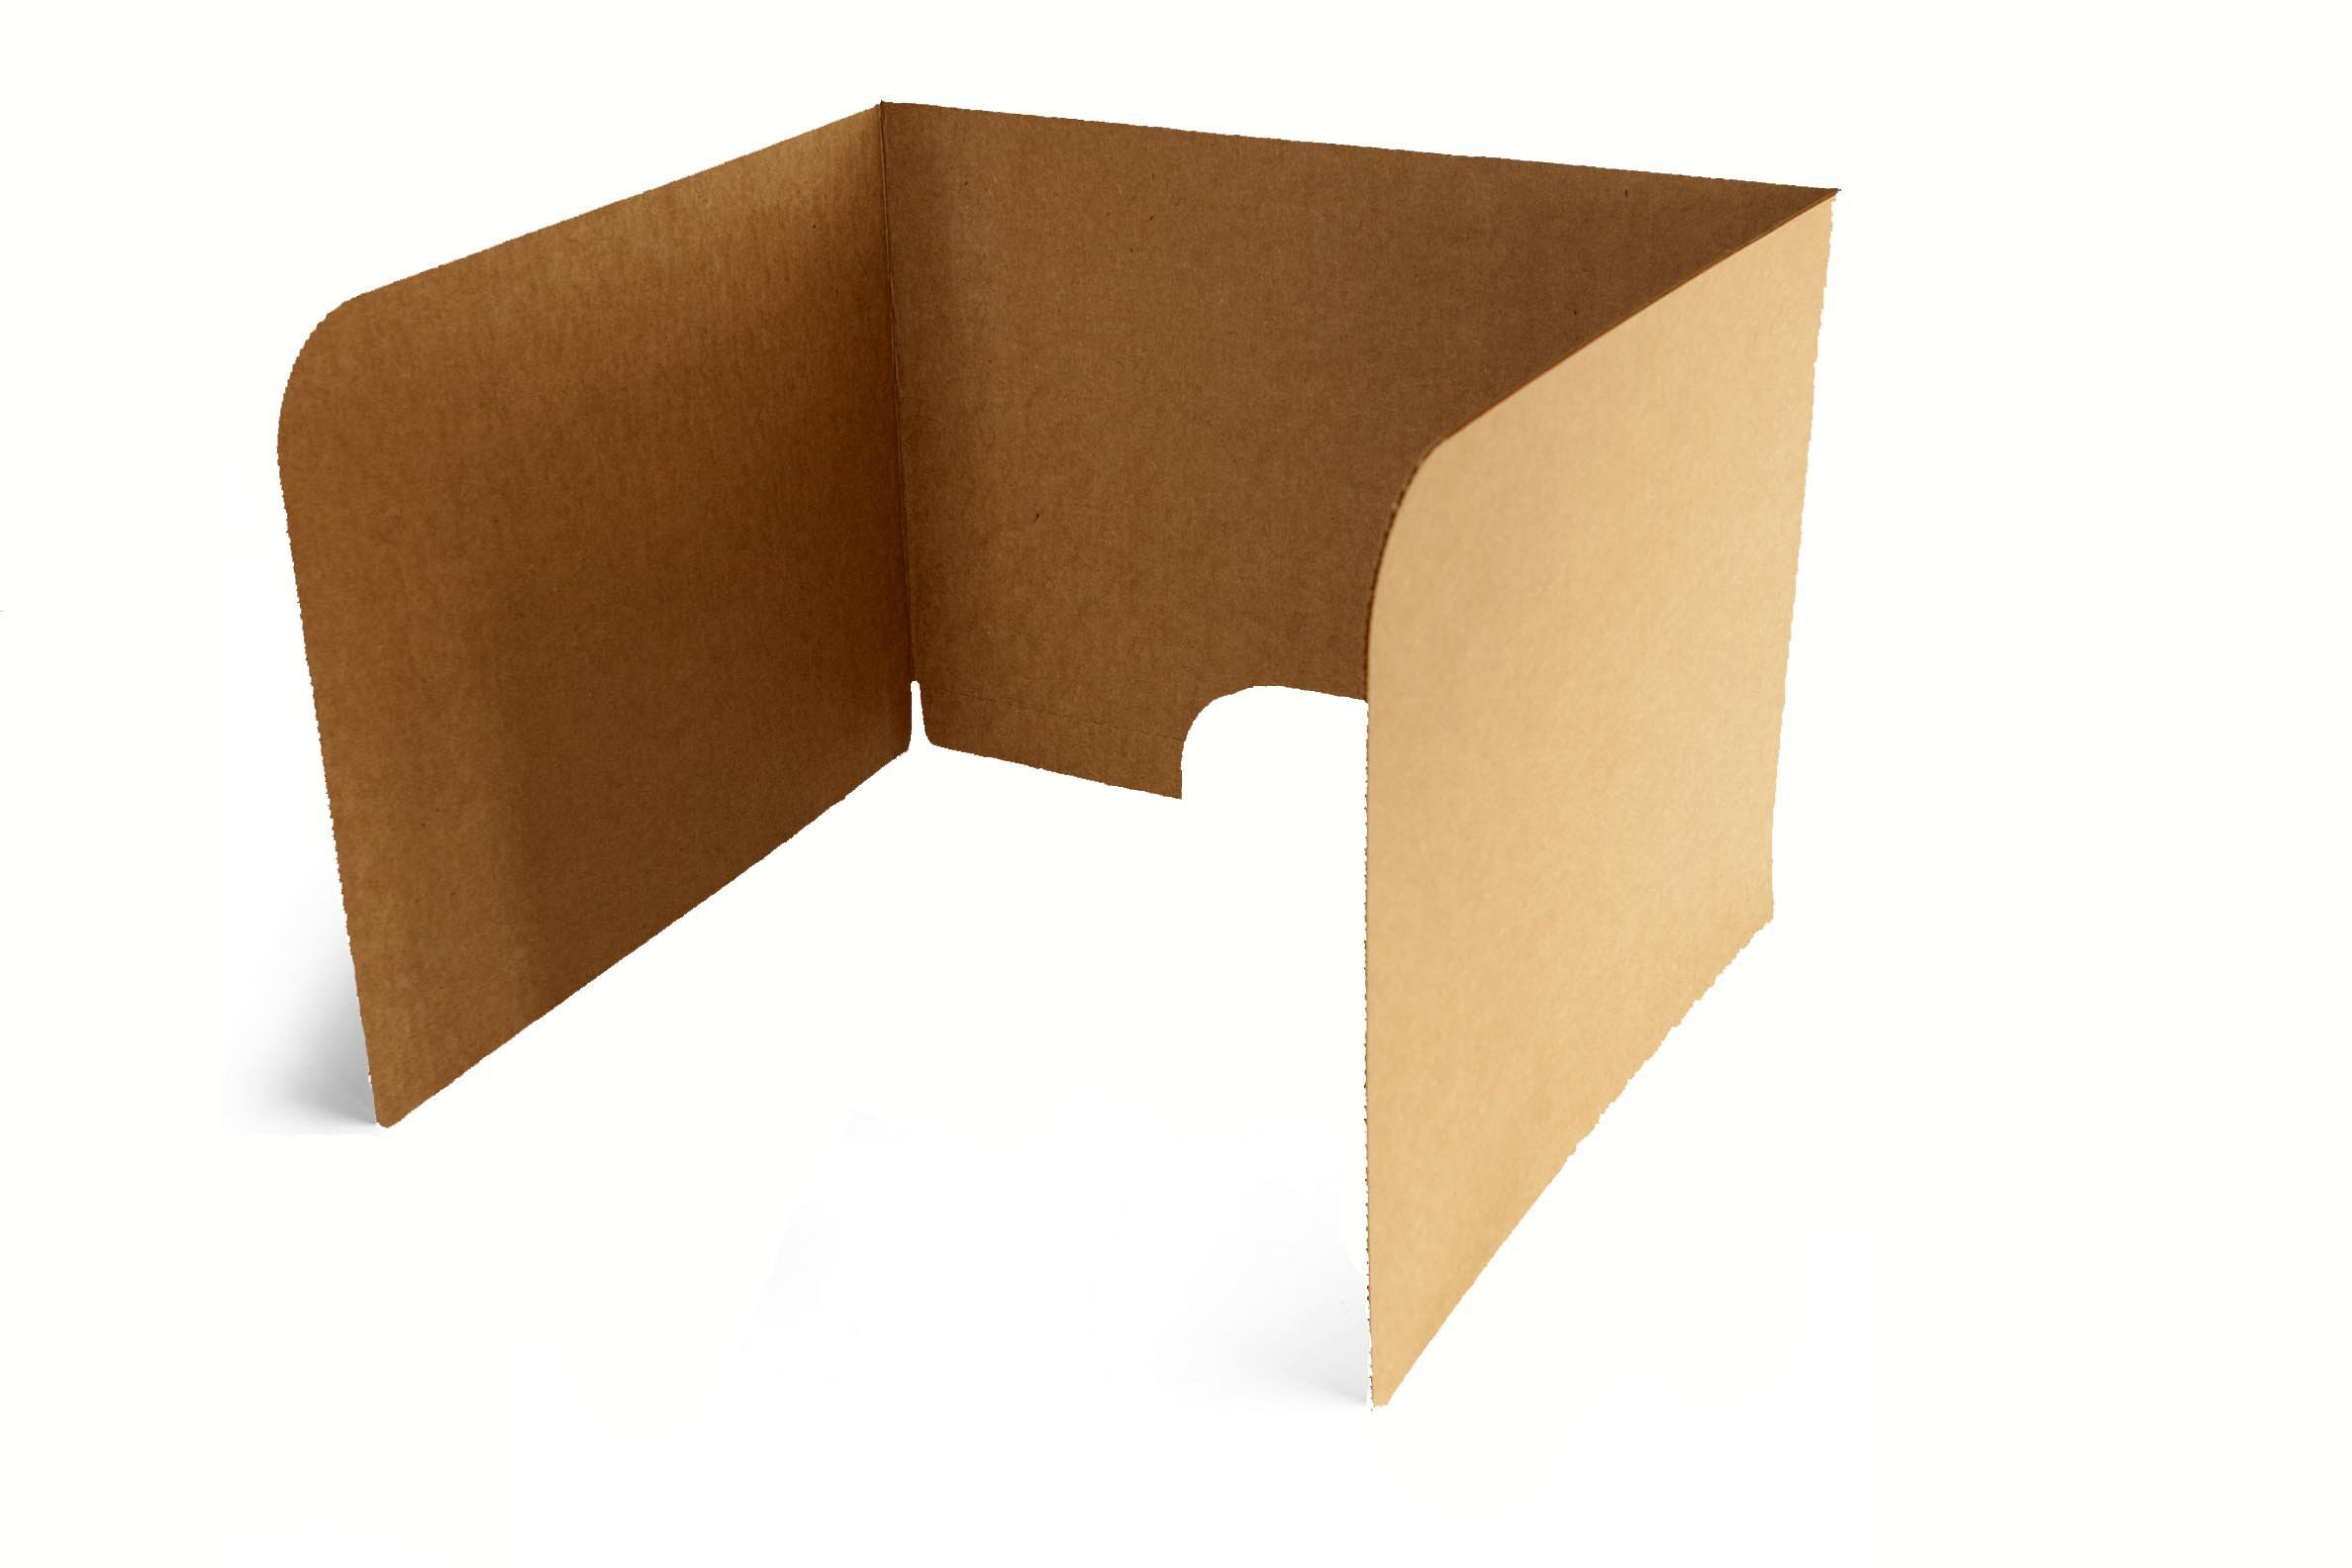 Classroom Products Computer Privacy Shield 19 Inch Tall - Kraft - (Pack of 10)